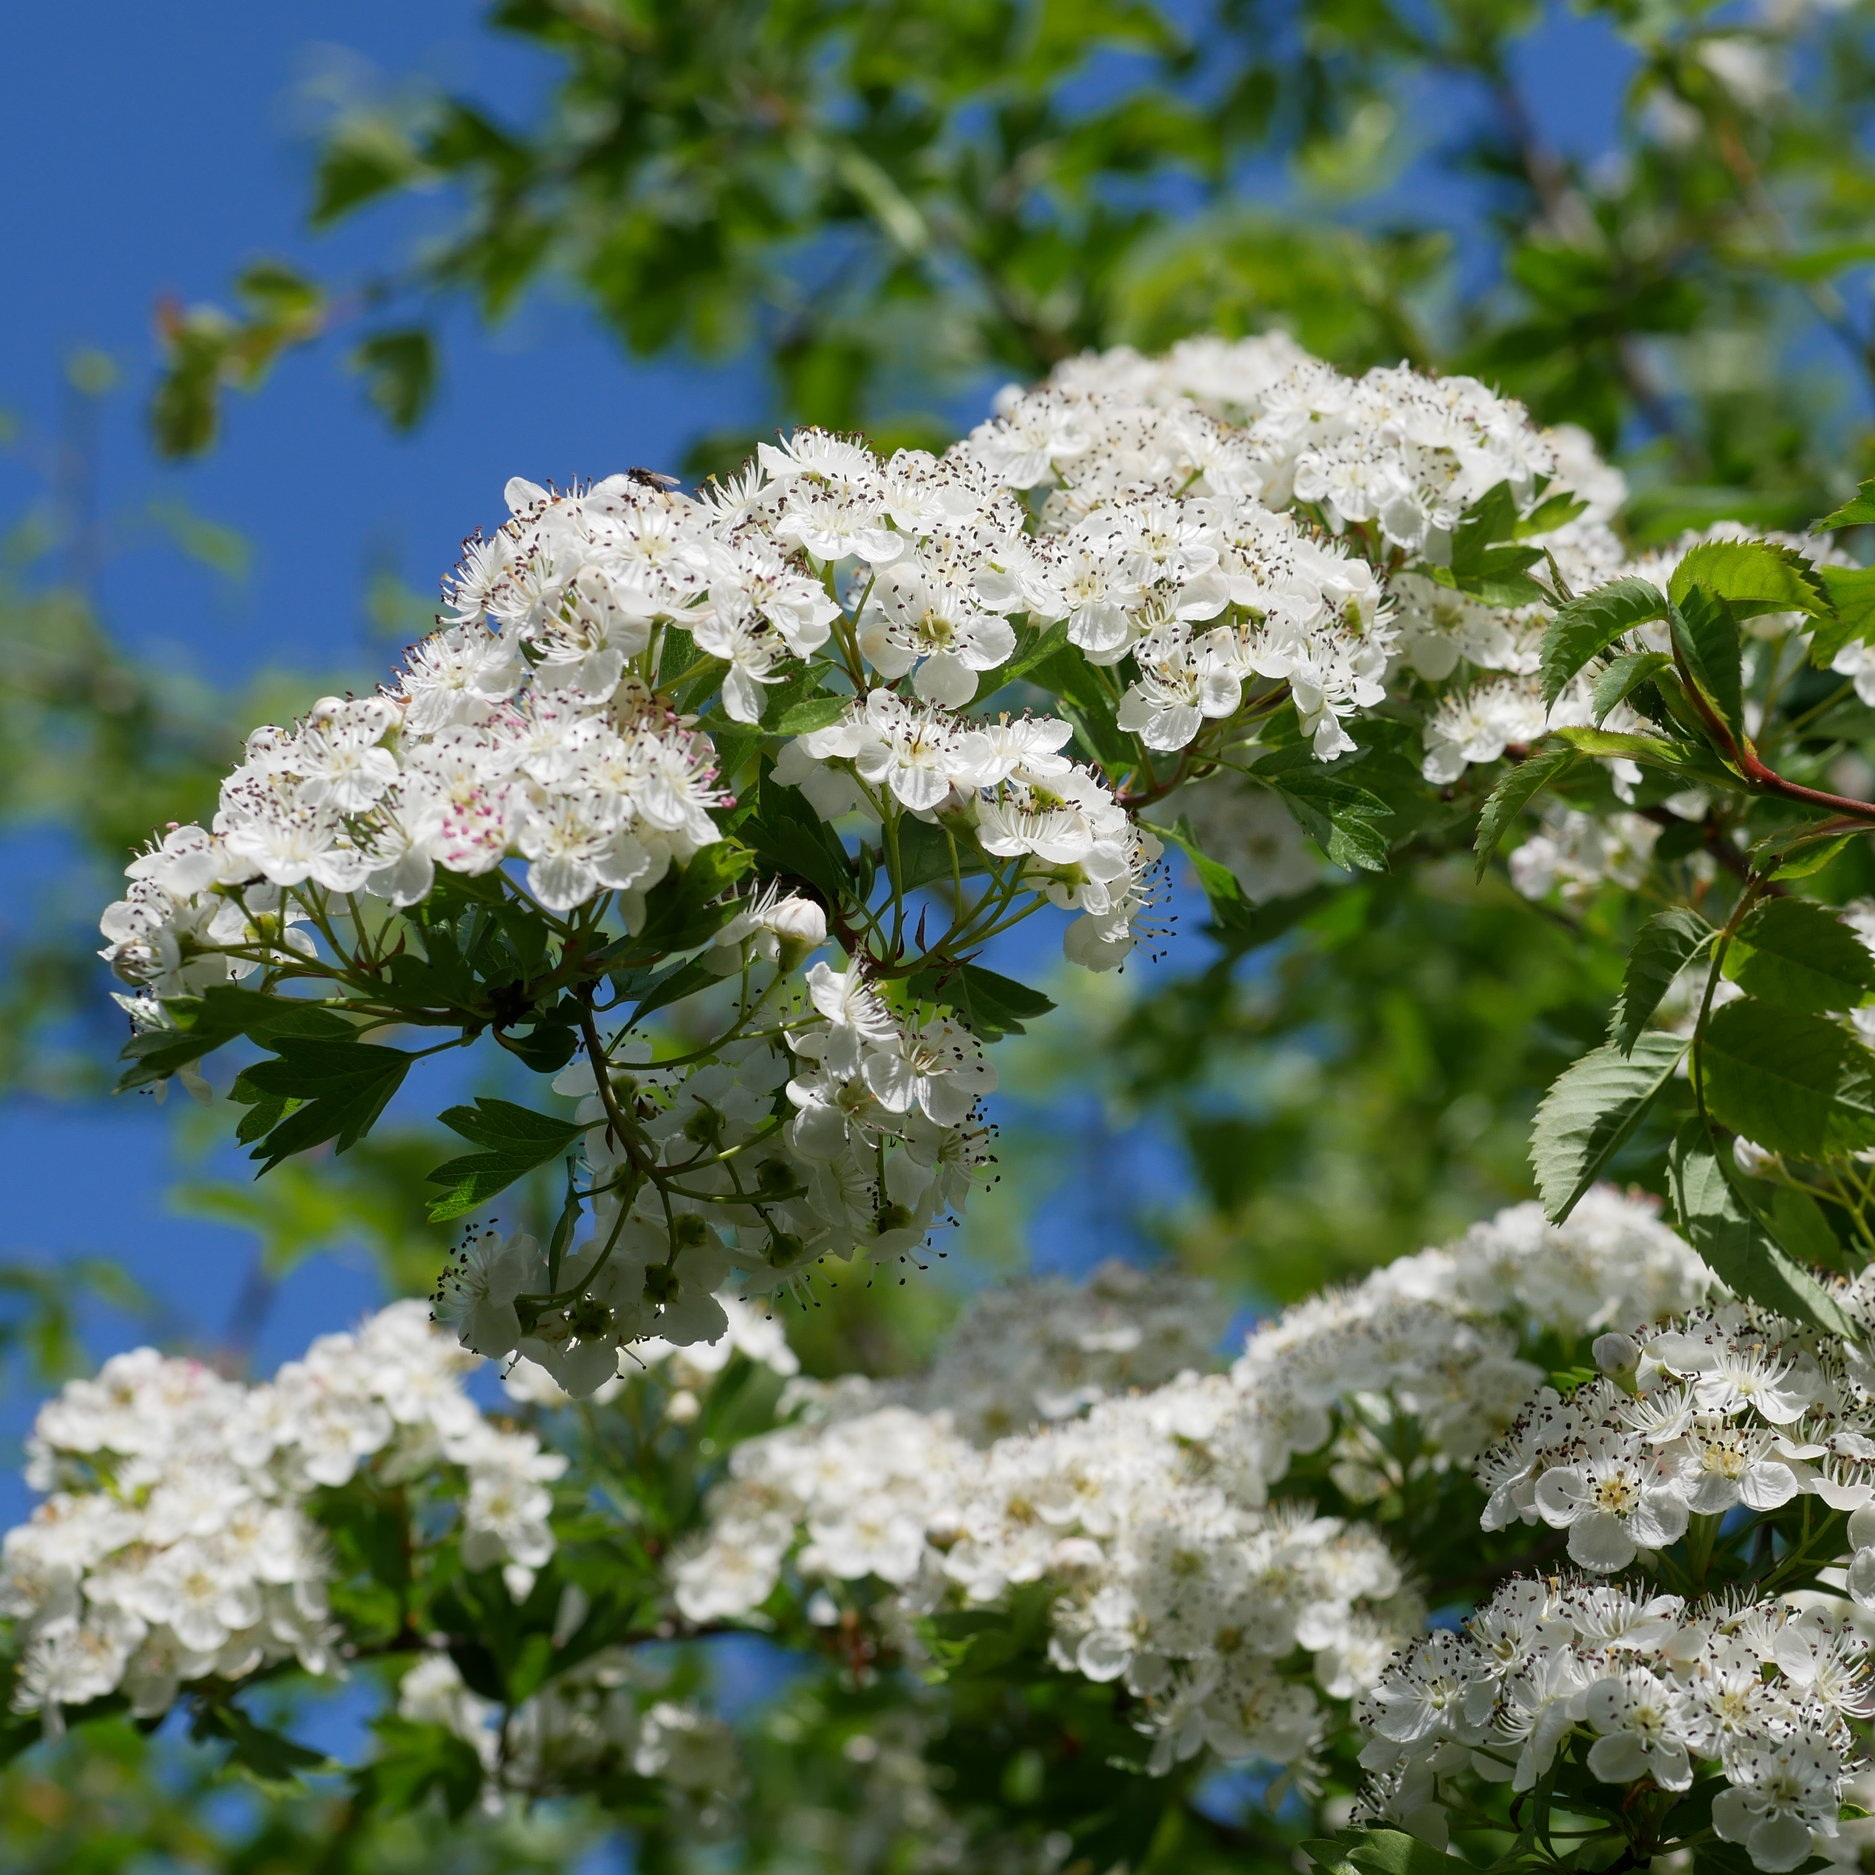 Hawthorn  - May blossoms are emerging everywhere in the Essence + Alchemy Garden. Hawthorn [Crataegus] also named May-tree is the only British plant named after the month in which it blooms.